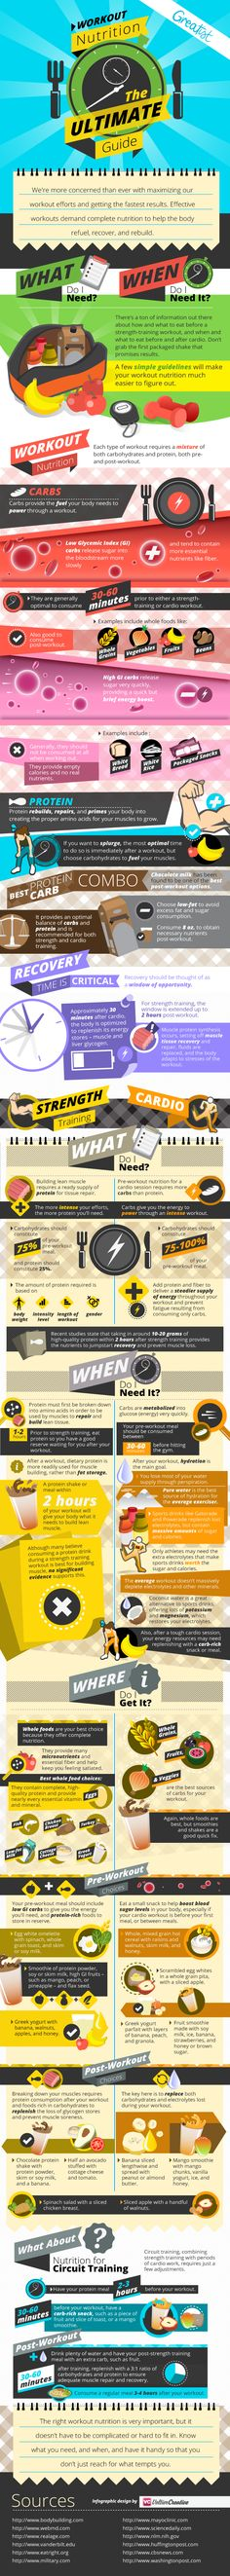 Complete guide to nutrition